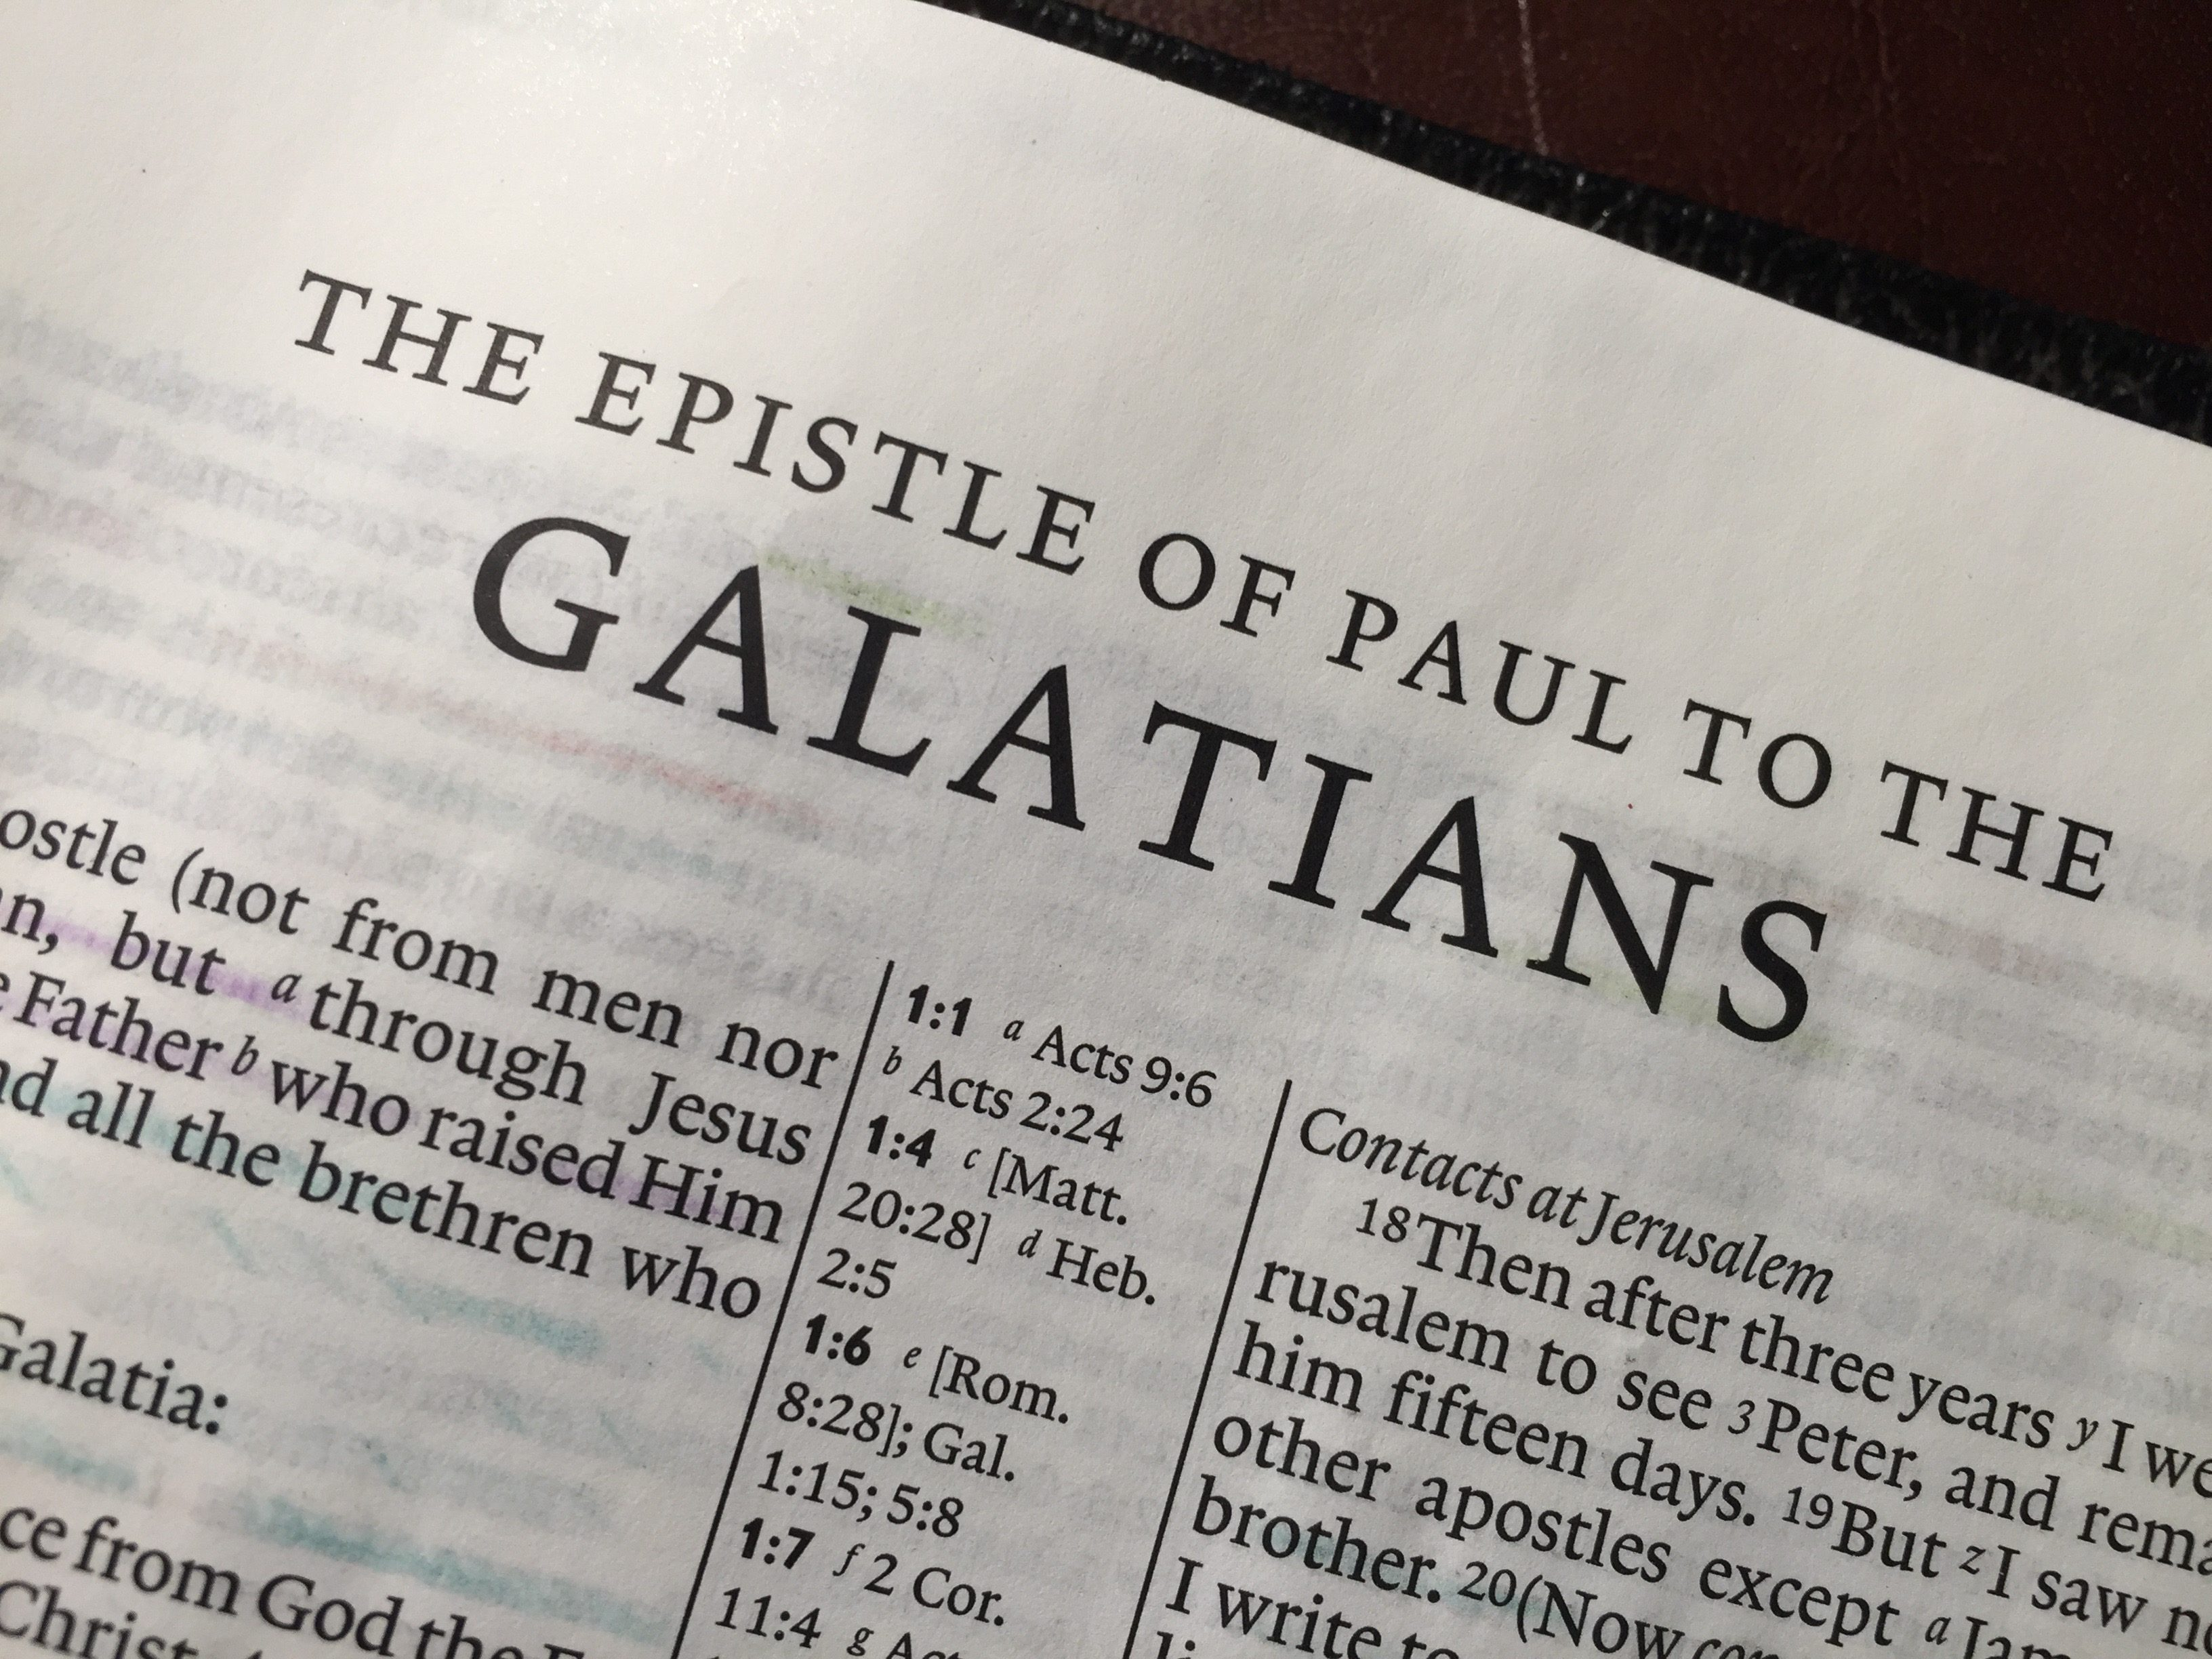 Galatians Explained Simply from a Hebraic Perspective Pt 1